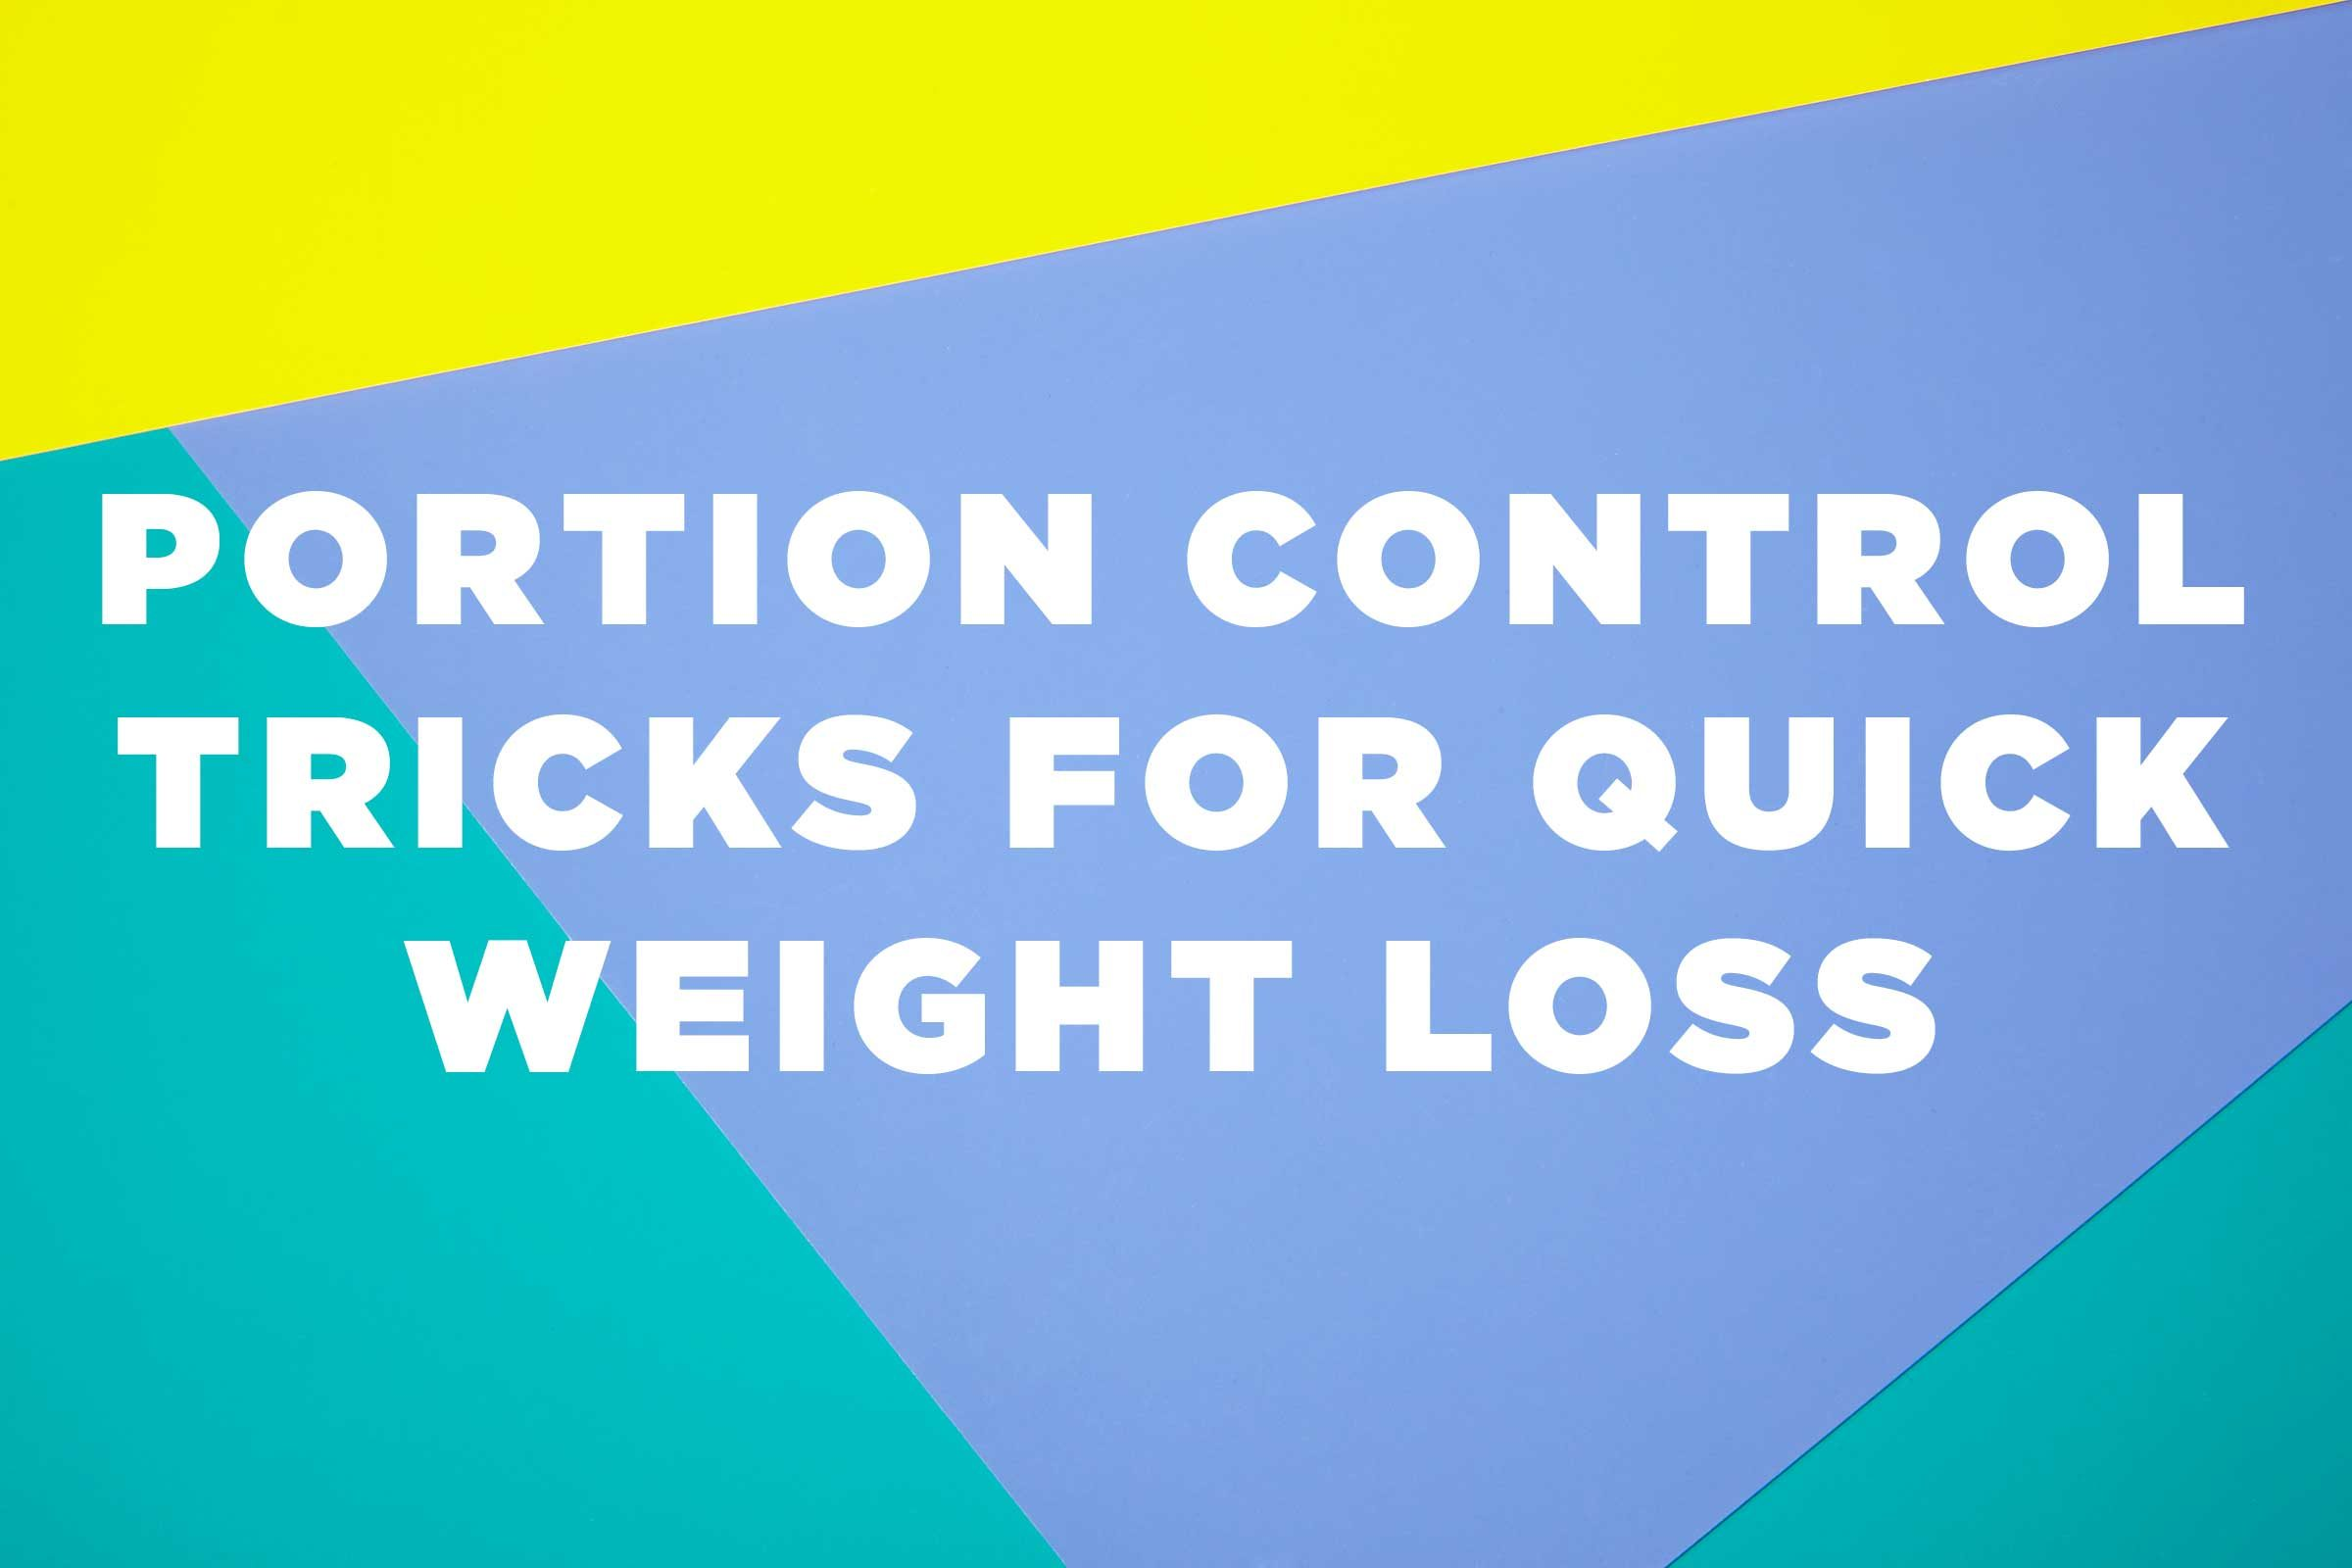 Control portion sizes for quick weight loss readers digest portion confusion calorie overload nvjuhfo Image collections